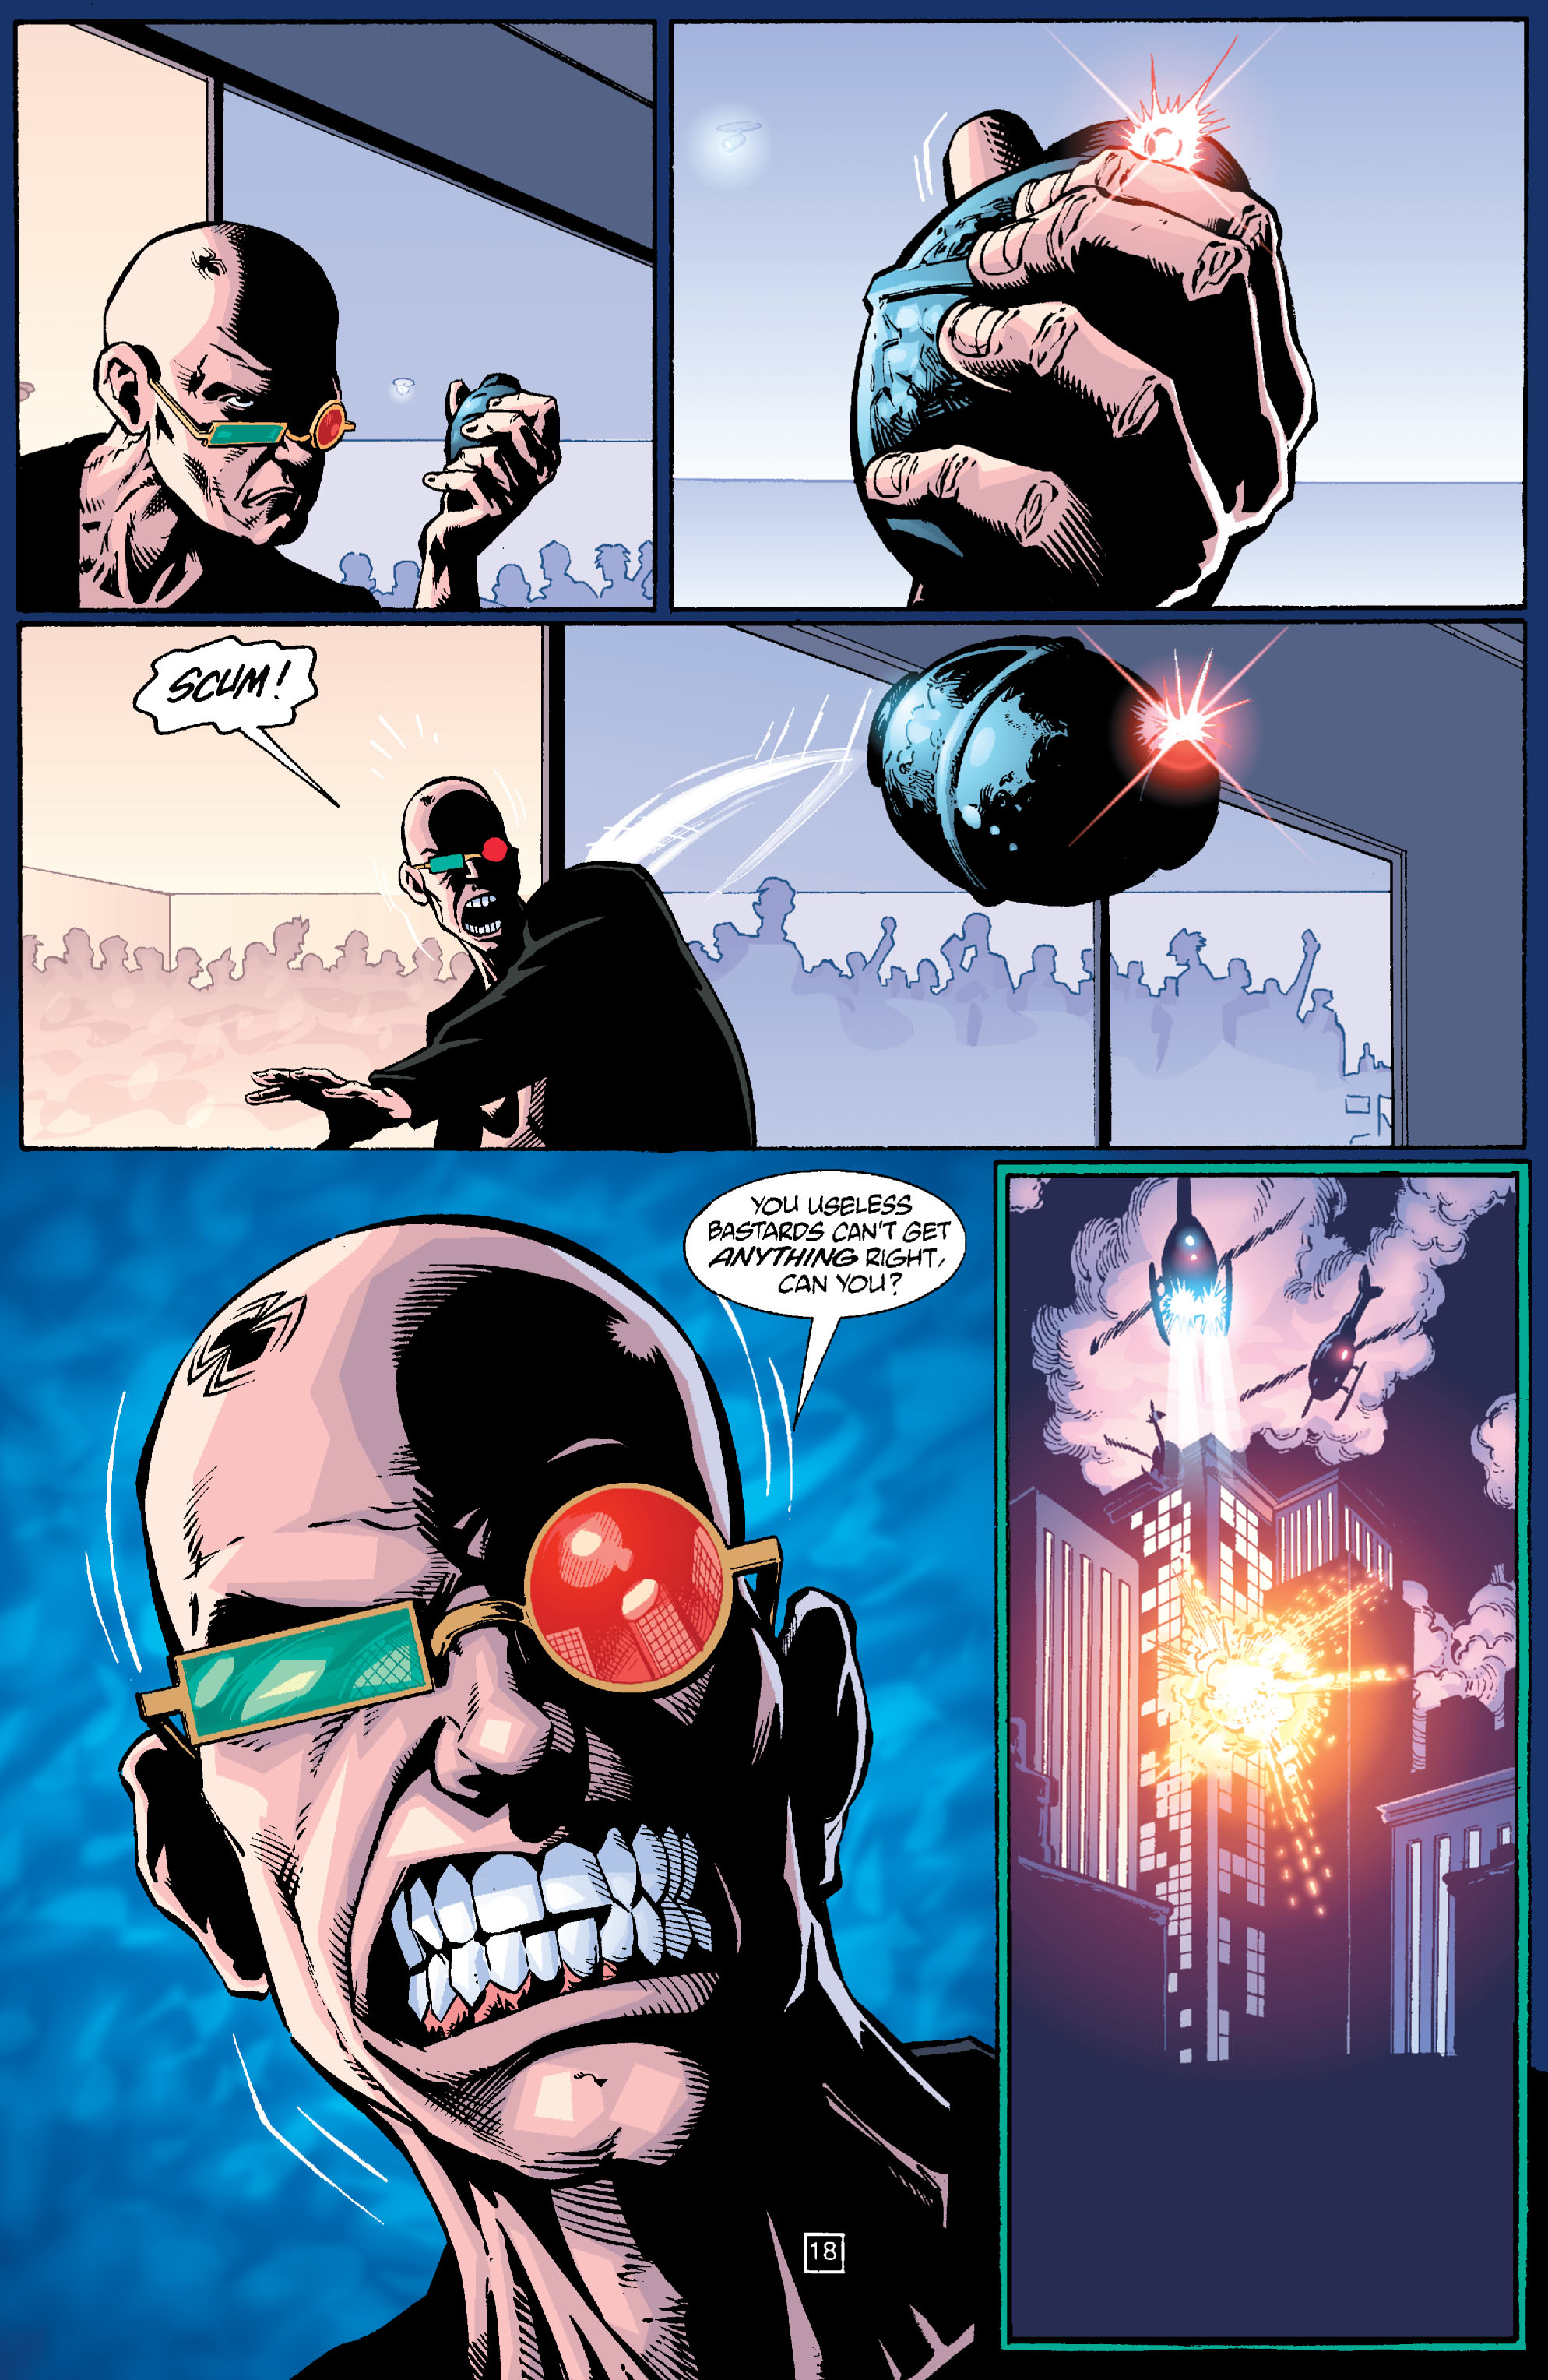 Read online Transmetropolitan comic -  Issue #24 - 19